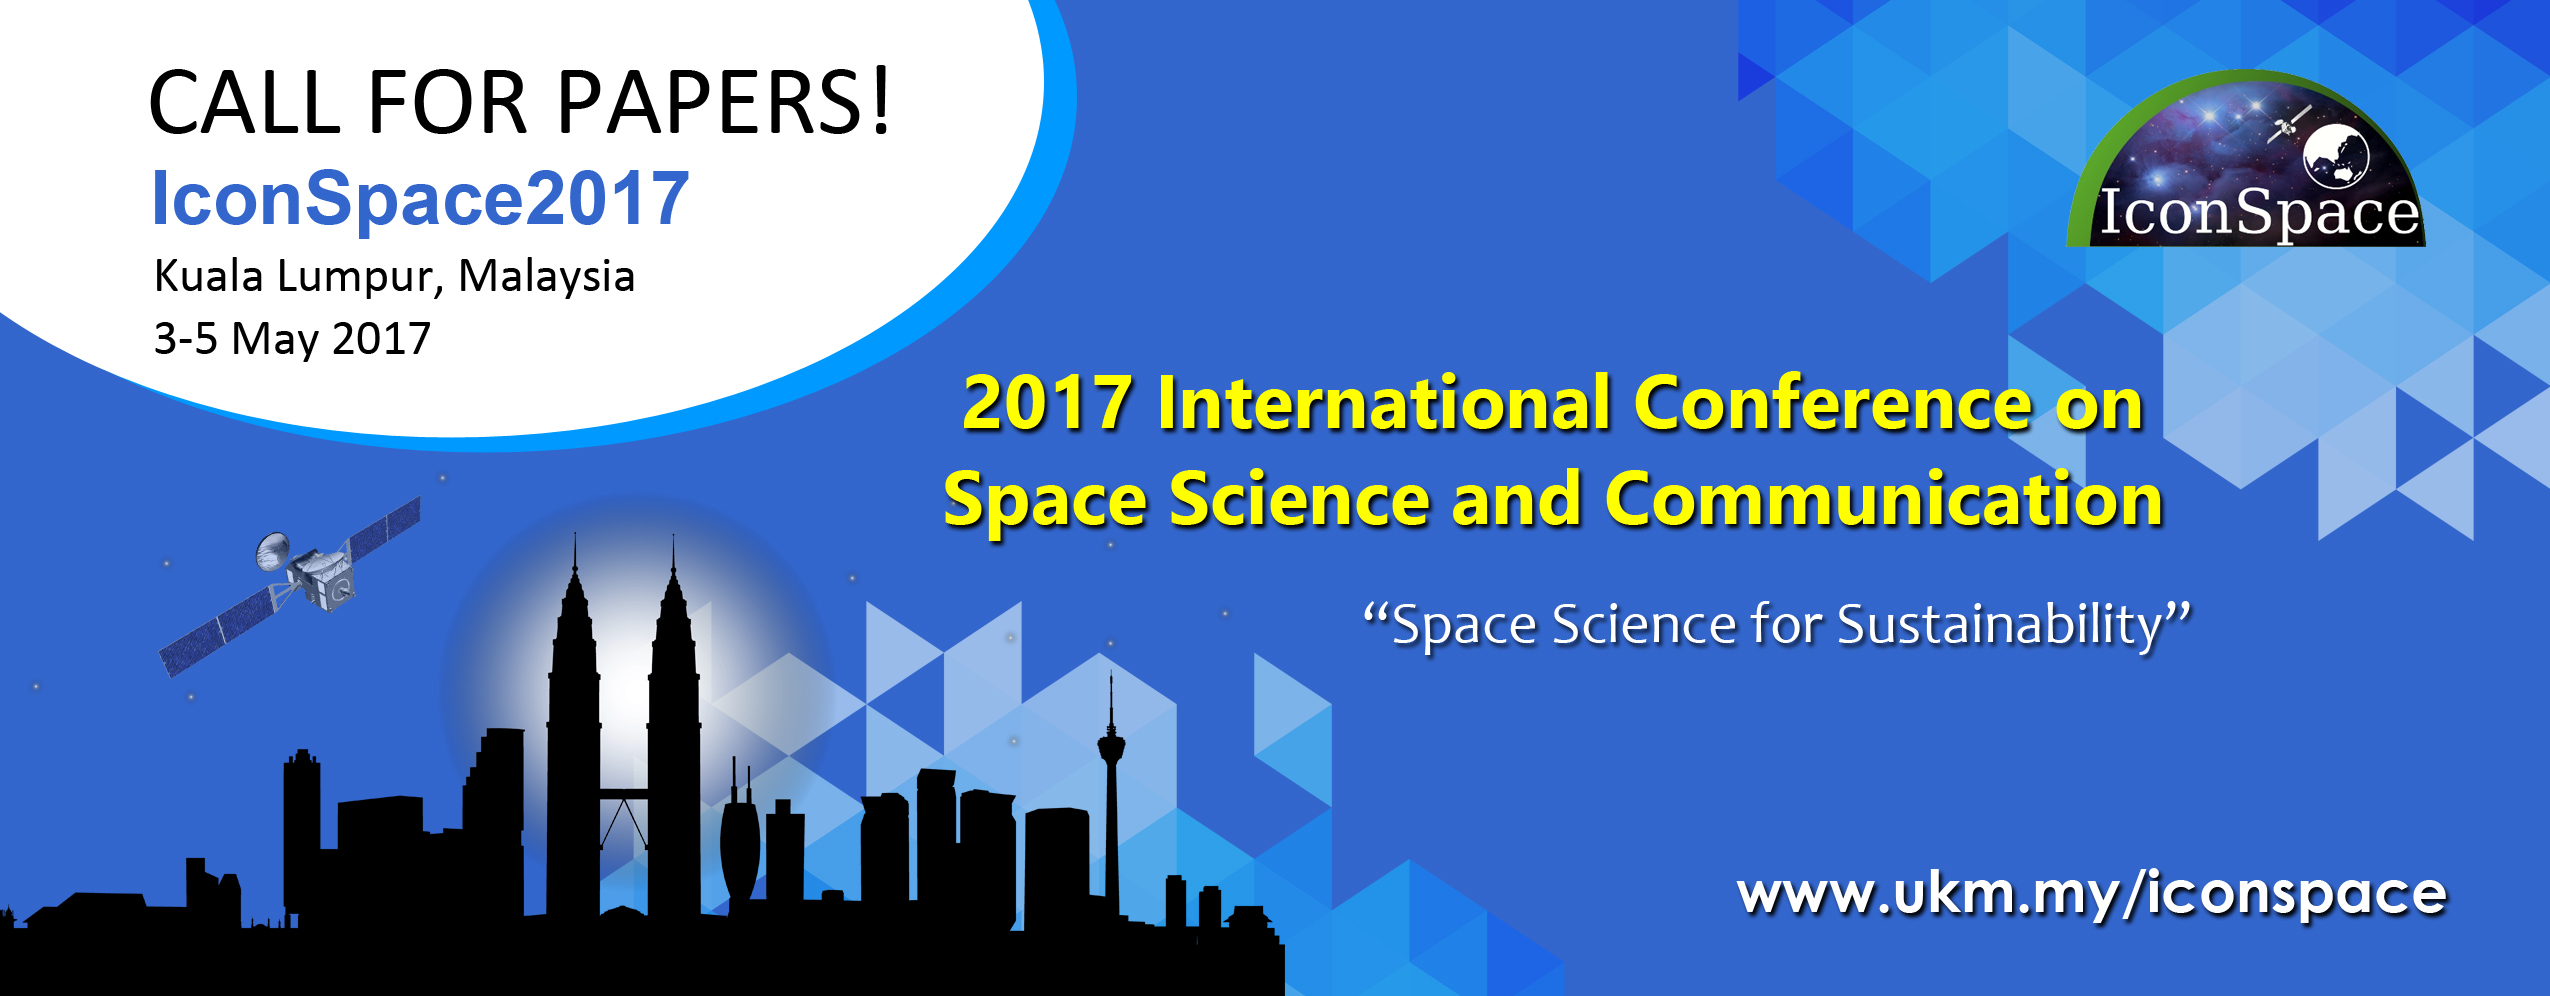 IconSpace2017